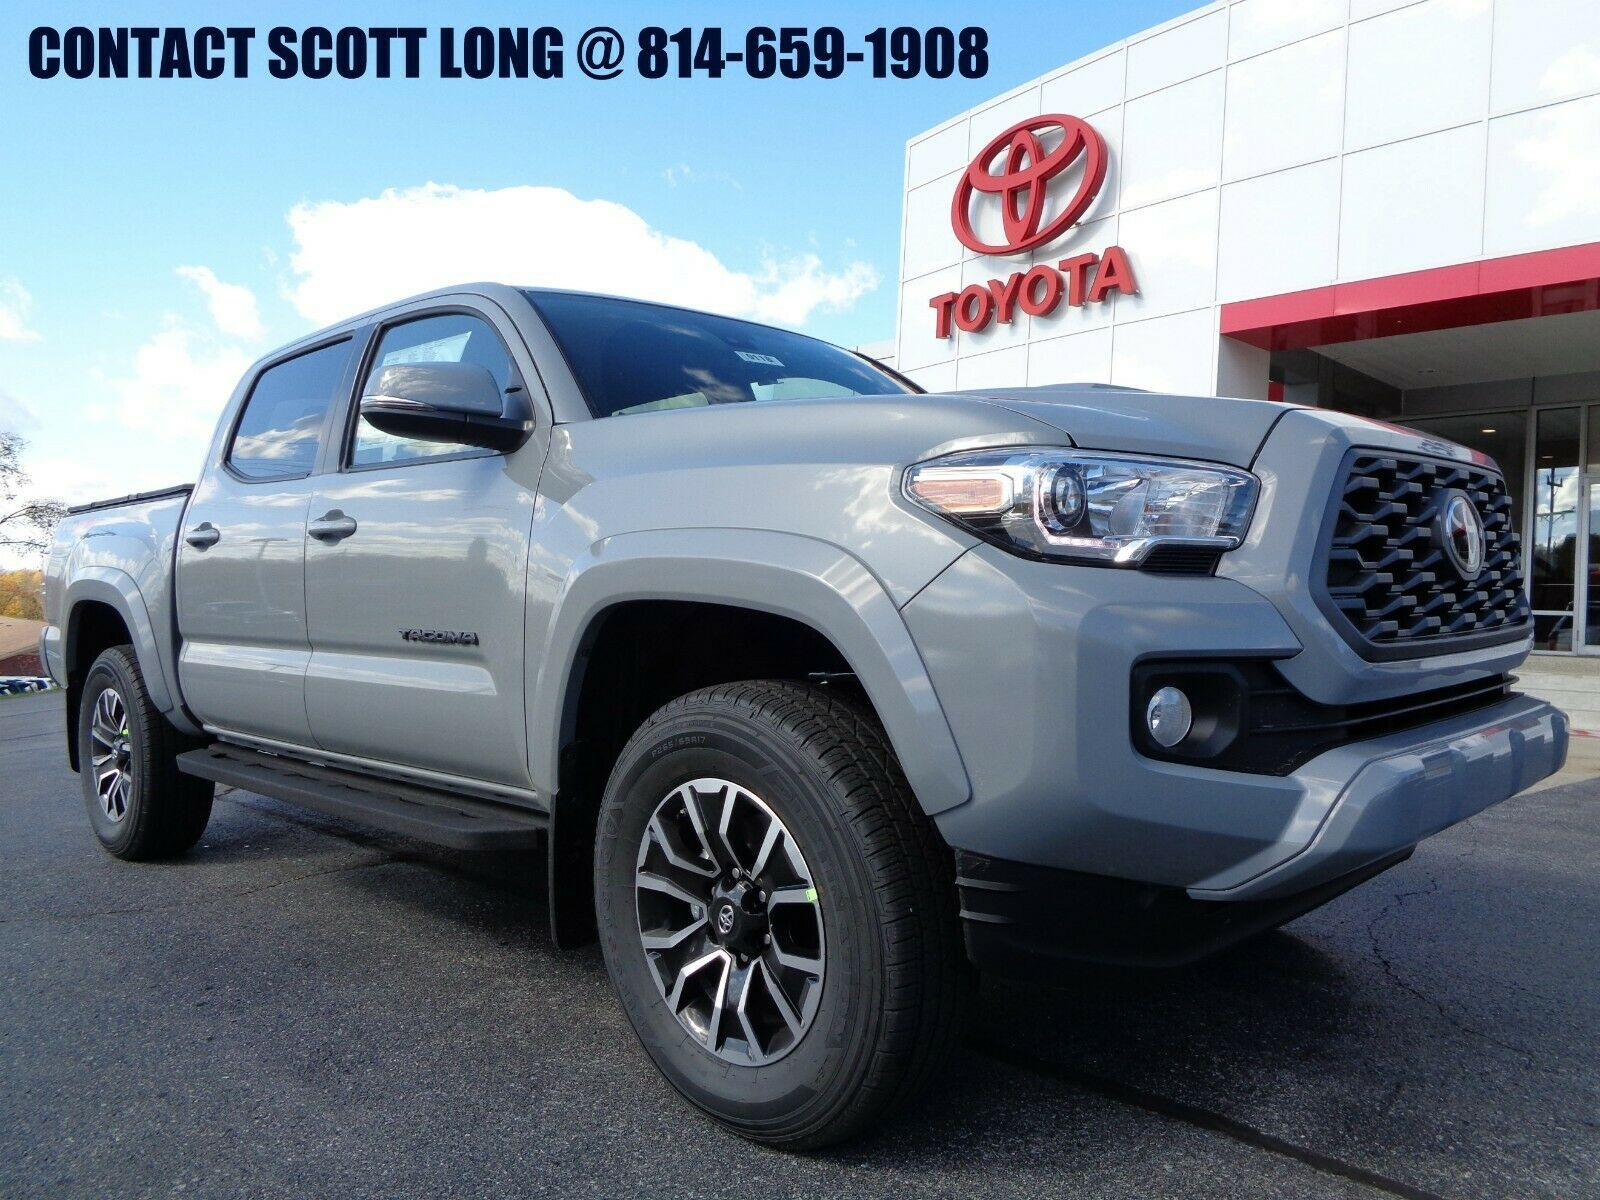 Used 2020 Toyota Tacoma New 2020 Double Cab 4 4 3 5l 4wd Trd Sport New 2020 Tacoma Double Cab 4 4 Trd Sport Premium Applecarplay Tonneau 4wd Cement 2020 In 2020 Toyota Tacoma Toyota Tacoma Double Cab Toyota